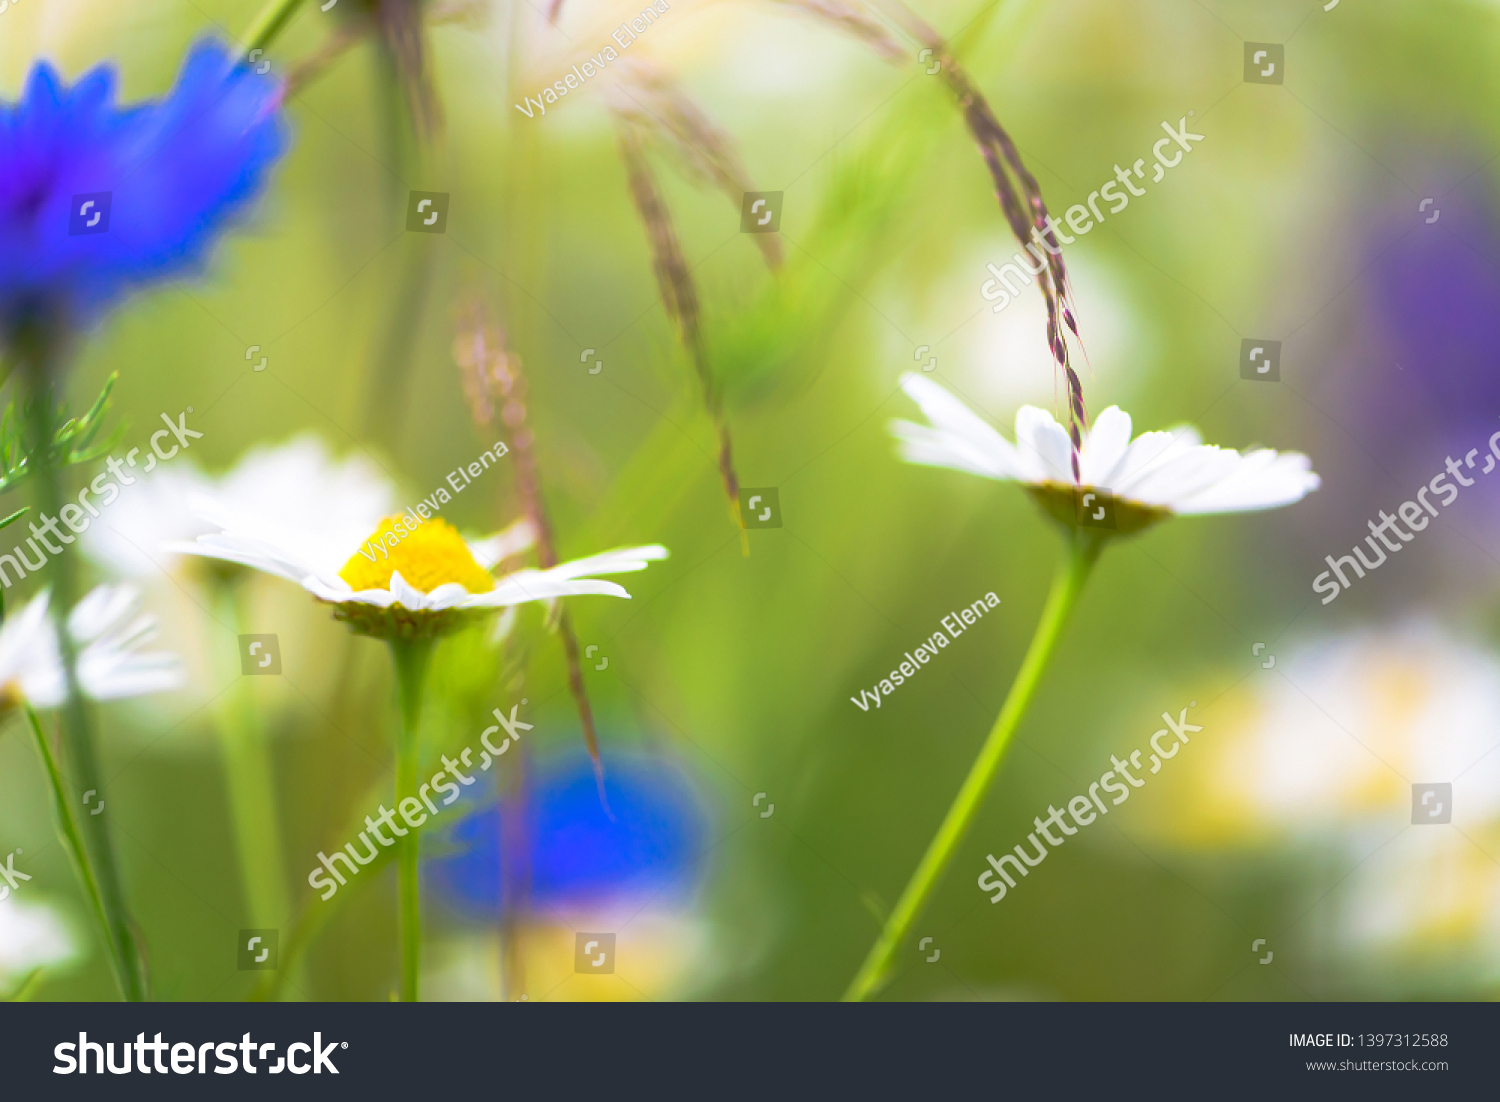 Summer flowers on the meadow. Wildflower meadow, flower meadow, wildflowers #1397312588